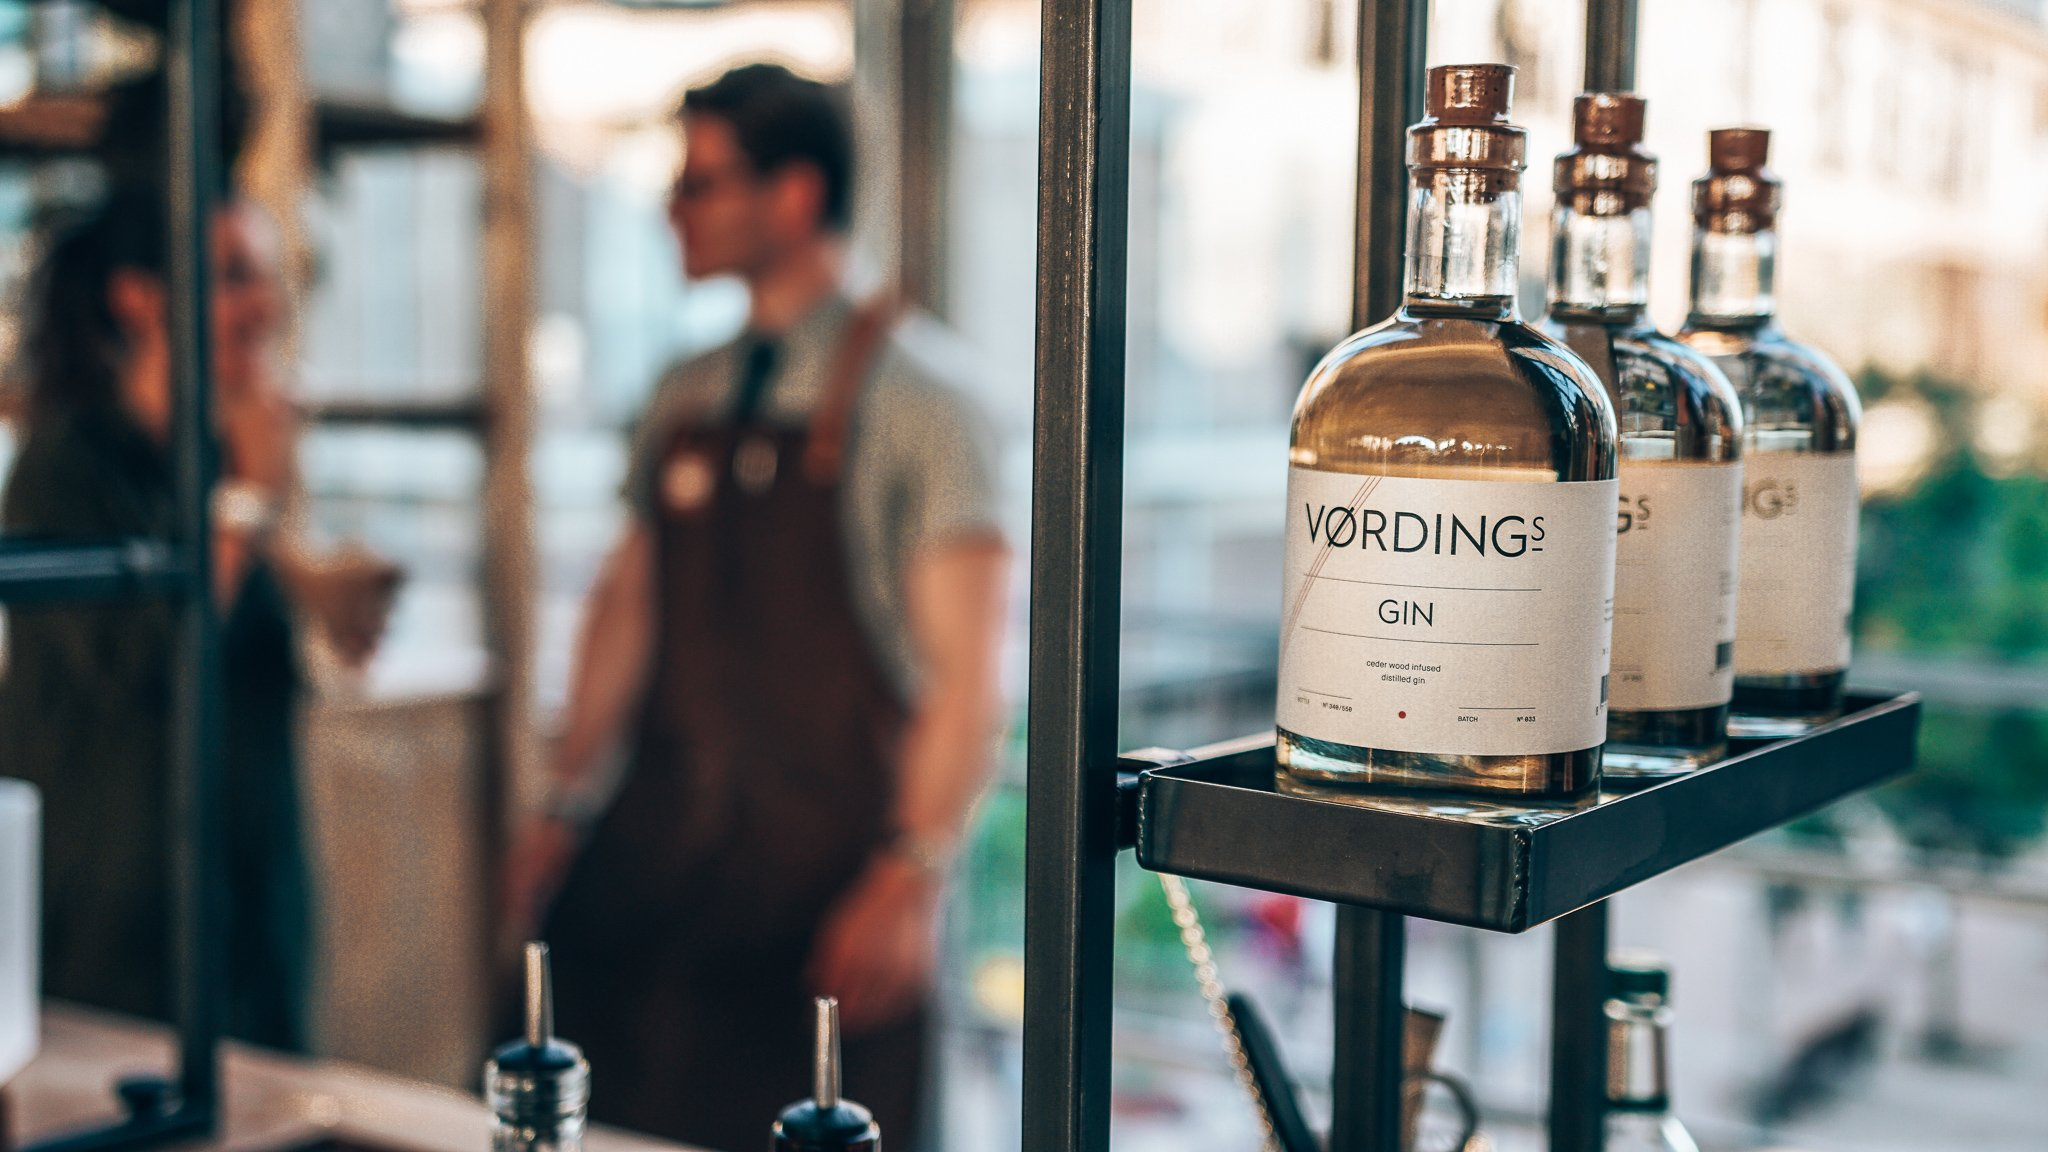 Vording Gin, Ginfestival Rotterdam, Alles over gin.